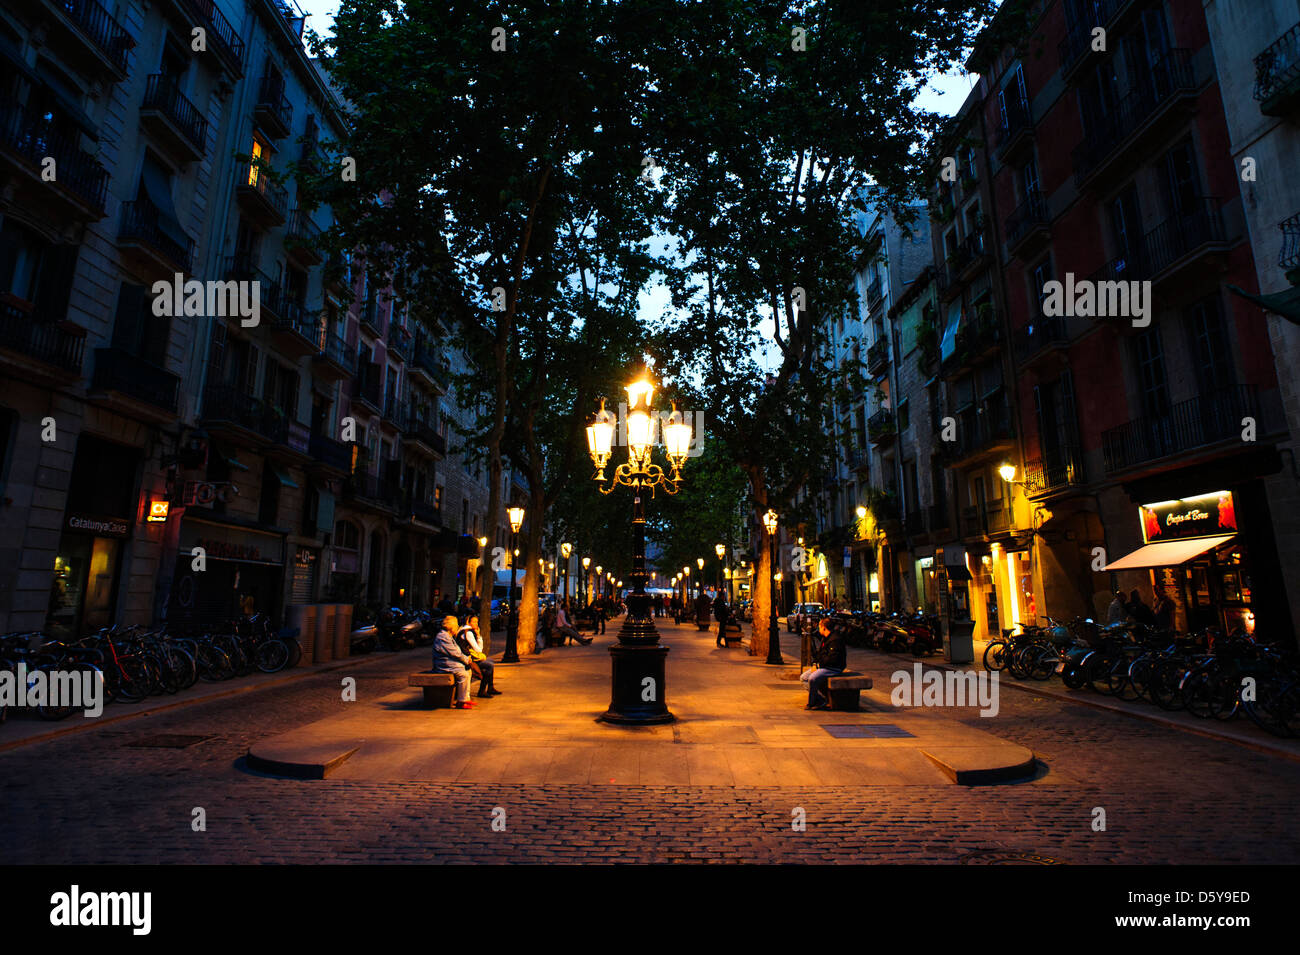 View of the Area of 'el born' at nighttime, Barcelona, Spain. - Stock Image